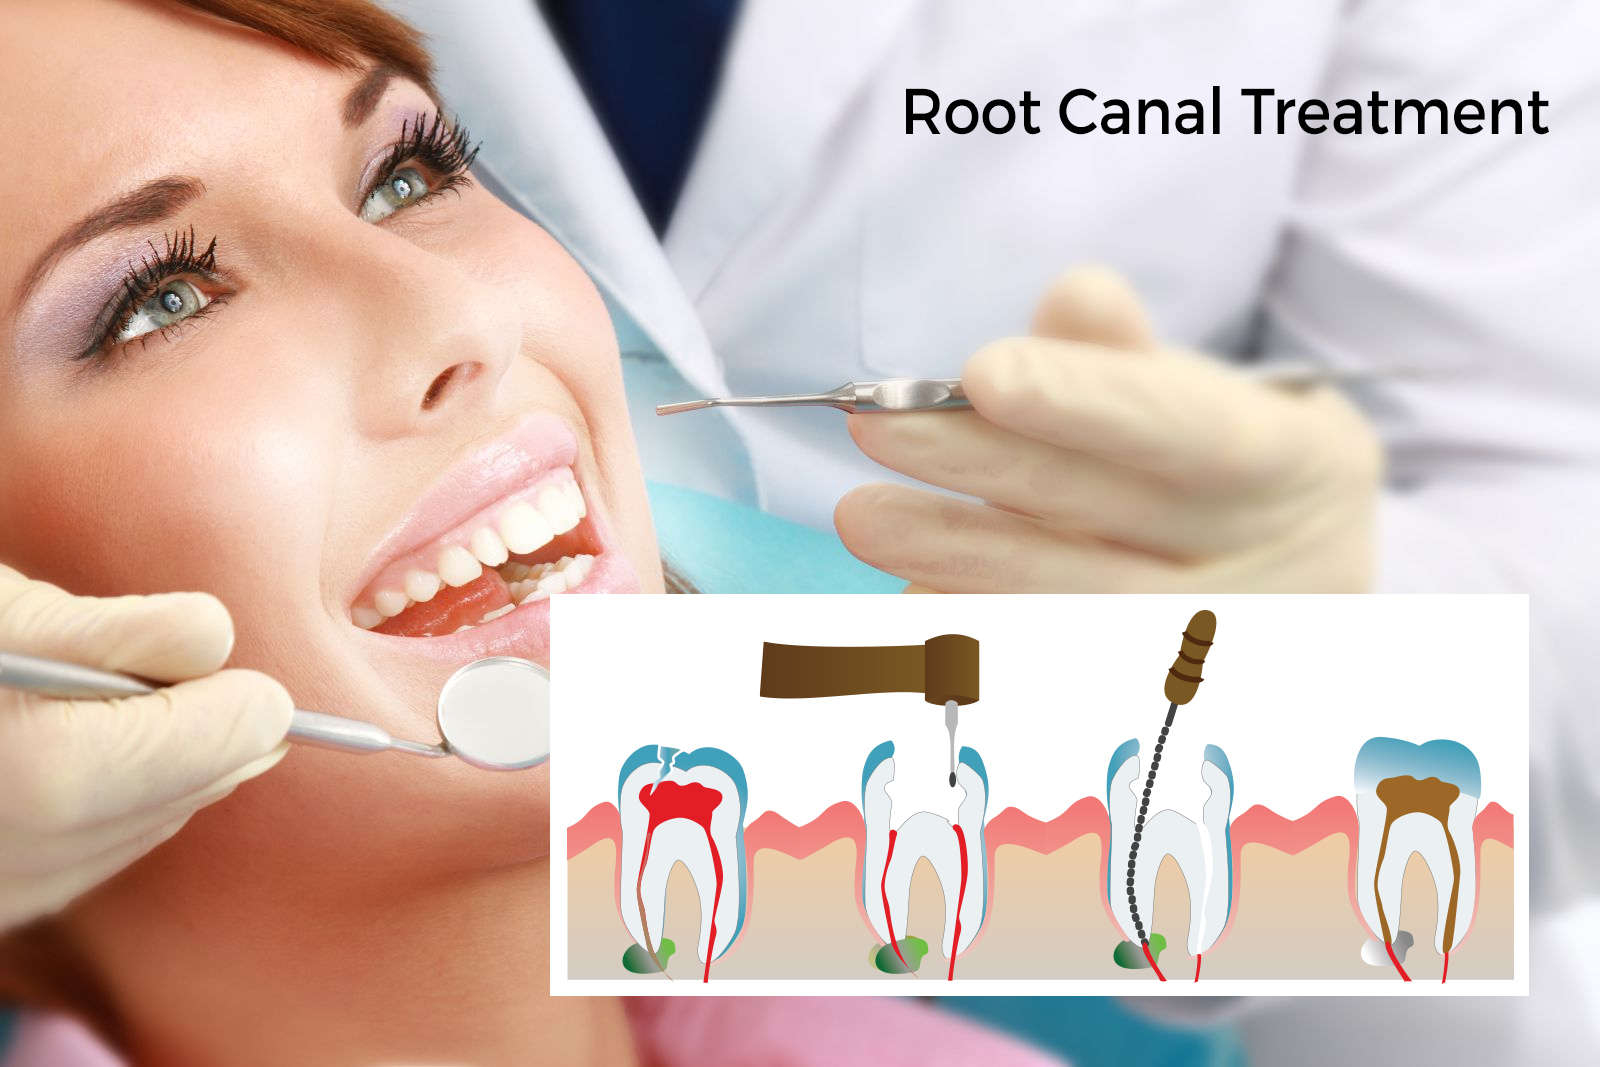 Everything you need to informed about Root Canal Treatment